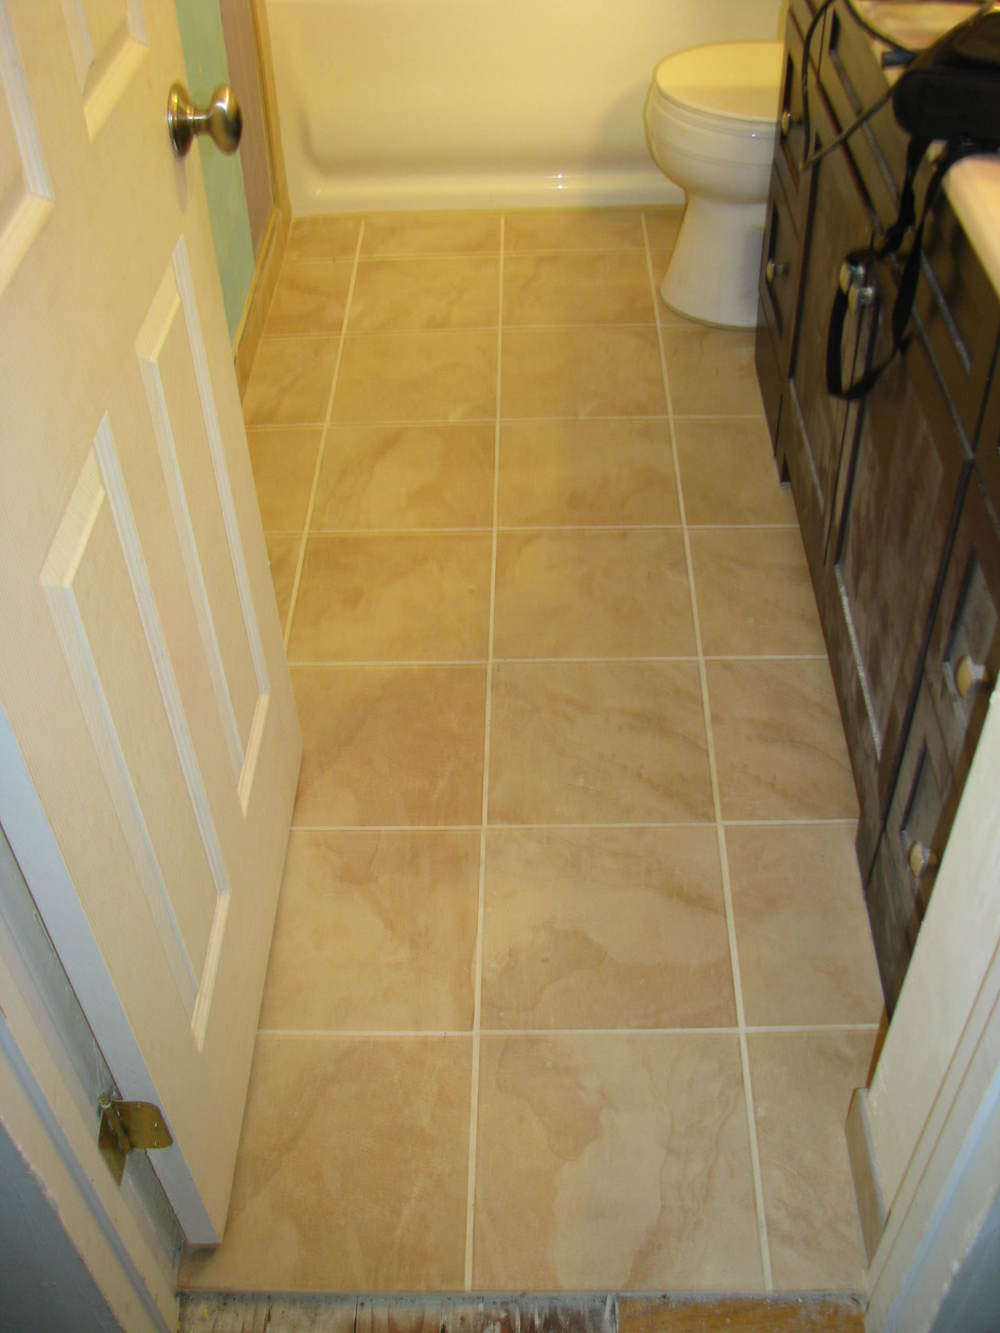 Tub Shower Bath Floor.JPG